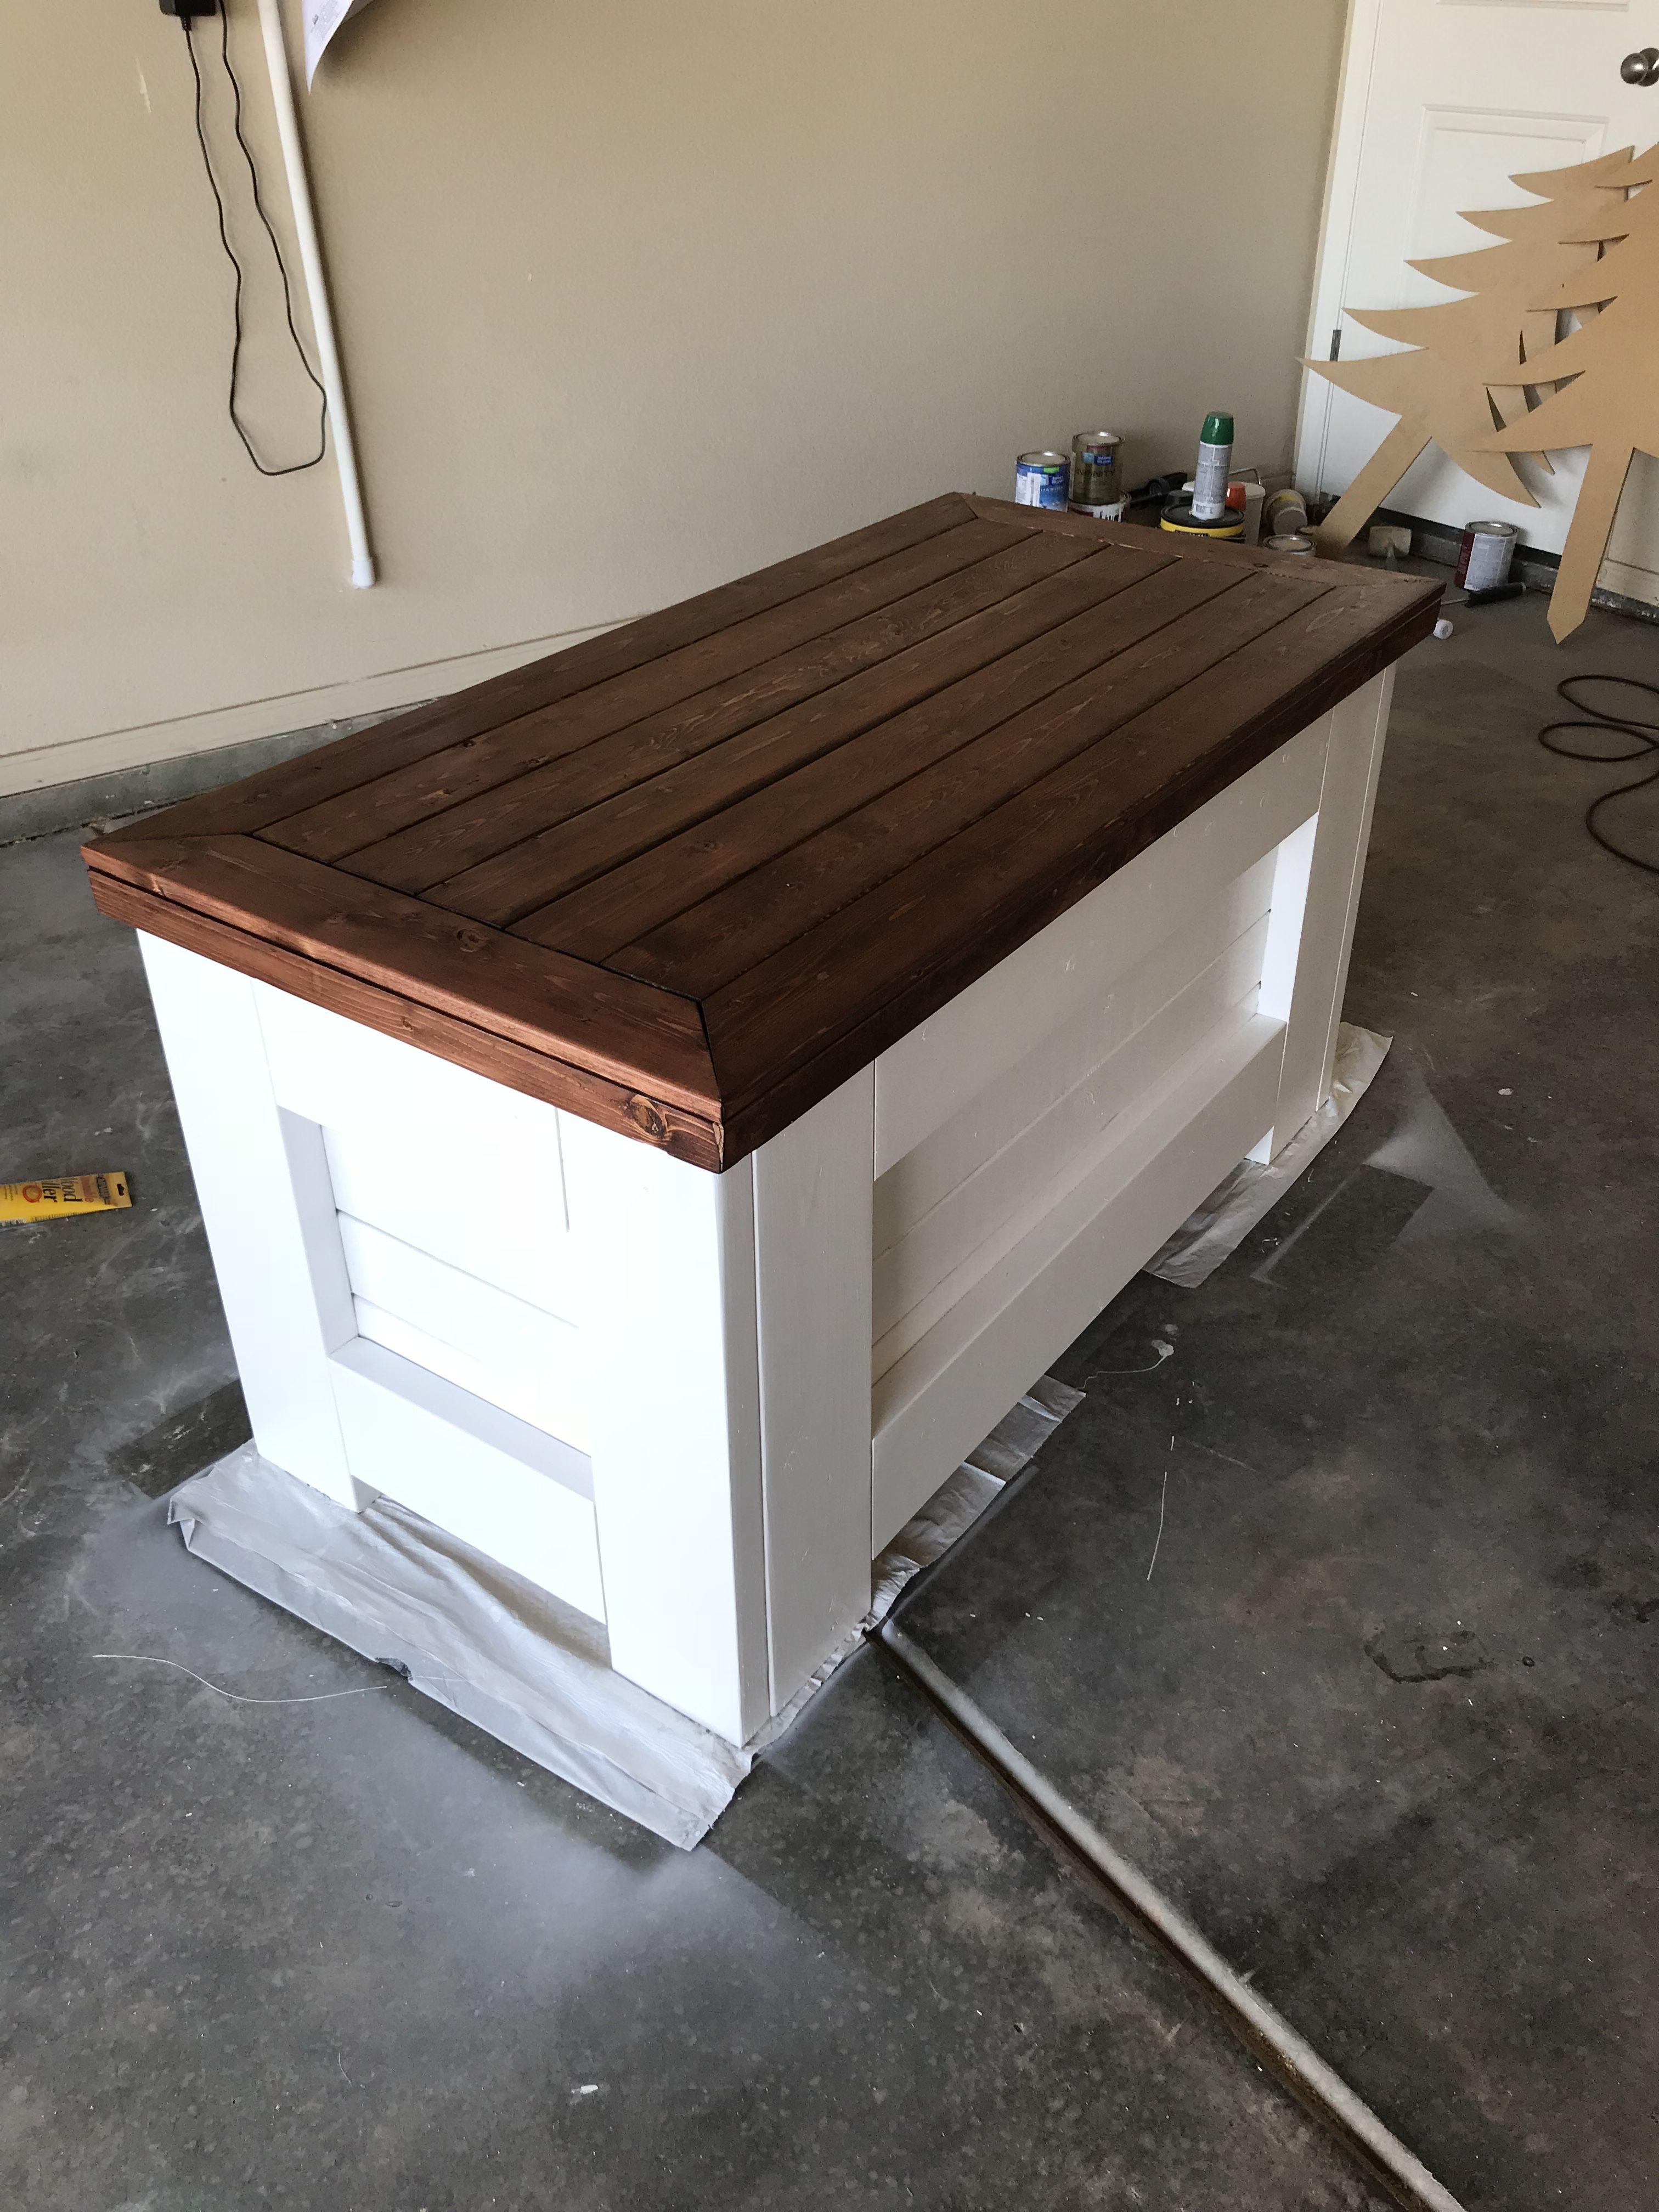 Custom Wooden Toy Chest Wooden Toy Chest Wooden Toy Boxes Rustic Toy Boxes